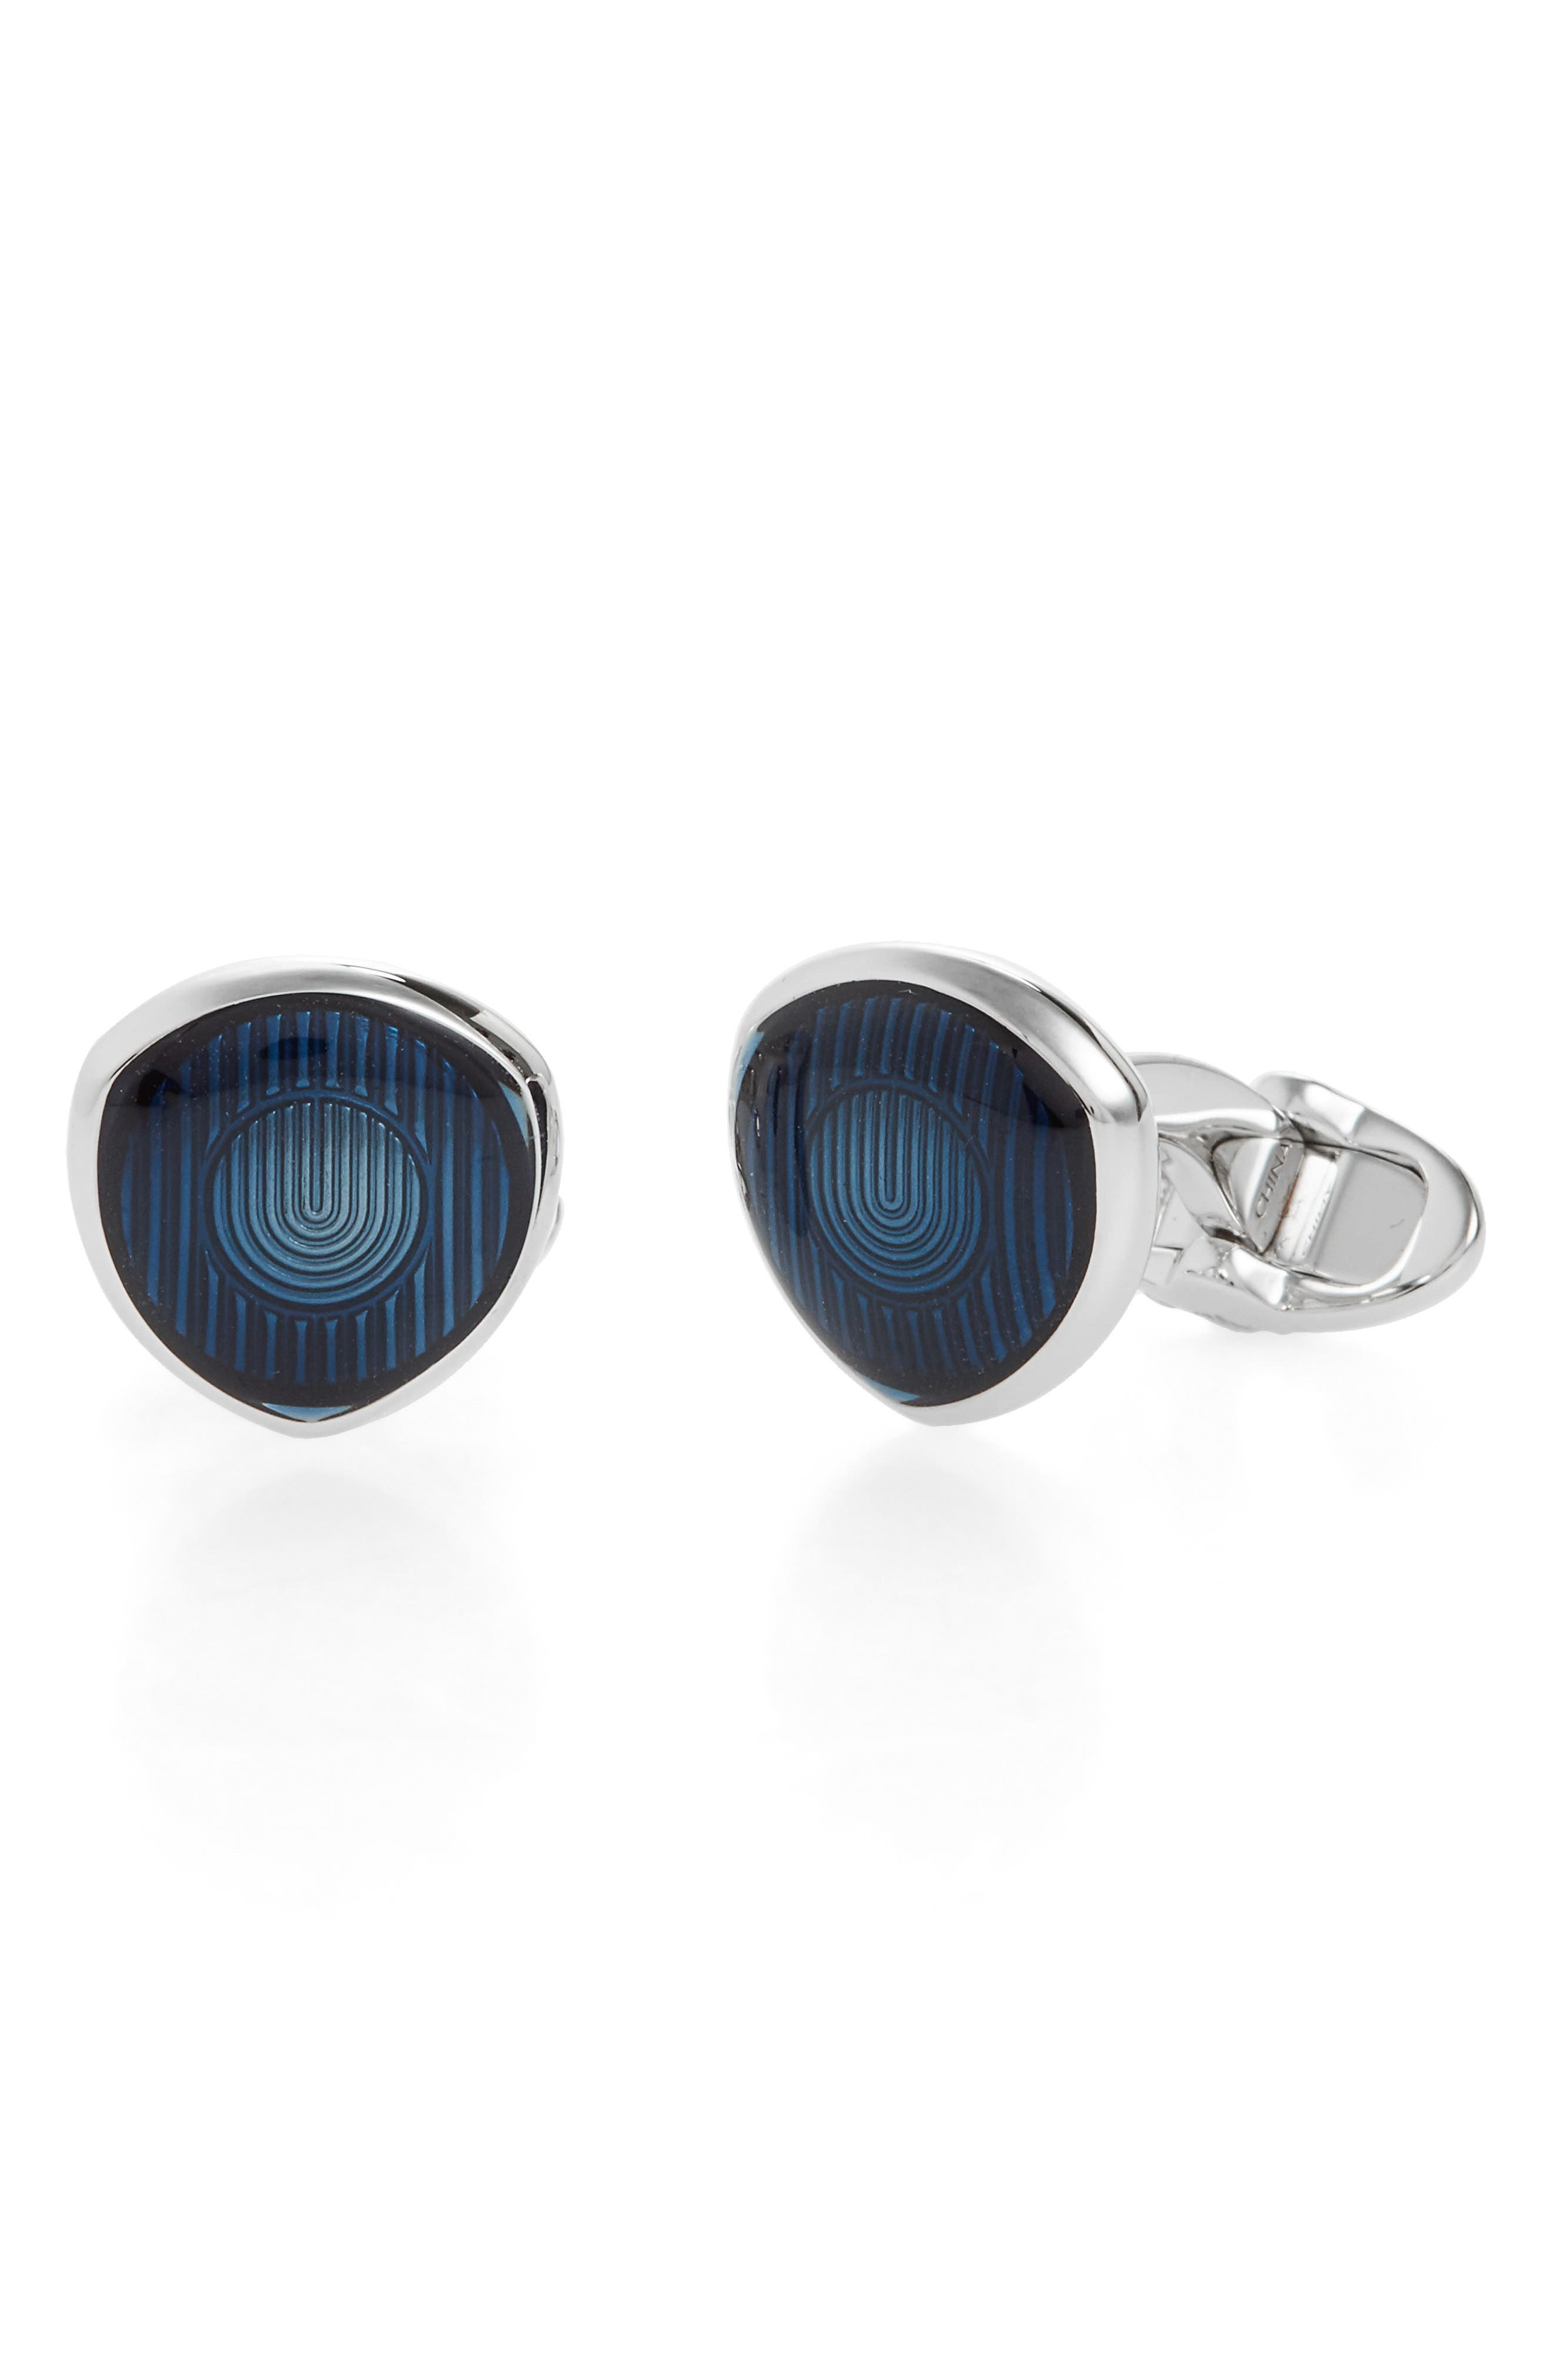 Headlamp Cuff Links,                             Main thumbnail 1, color,                             040